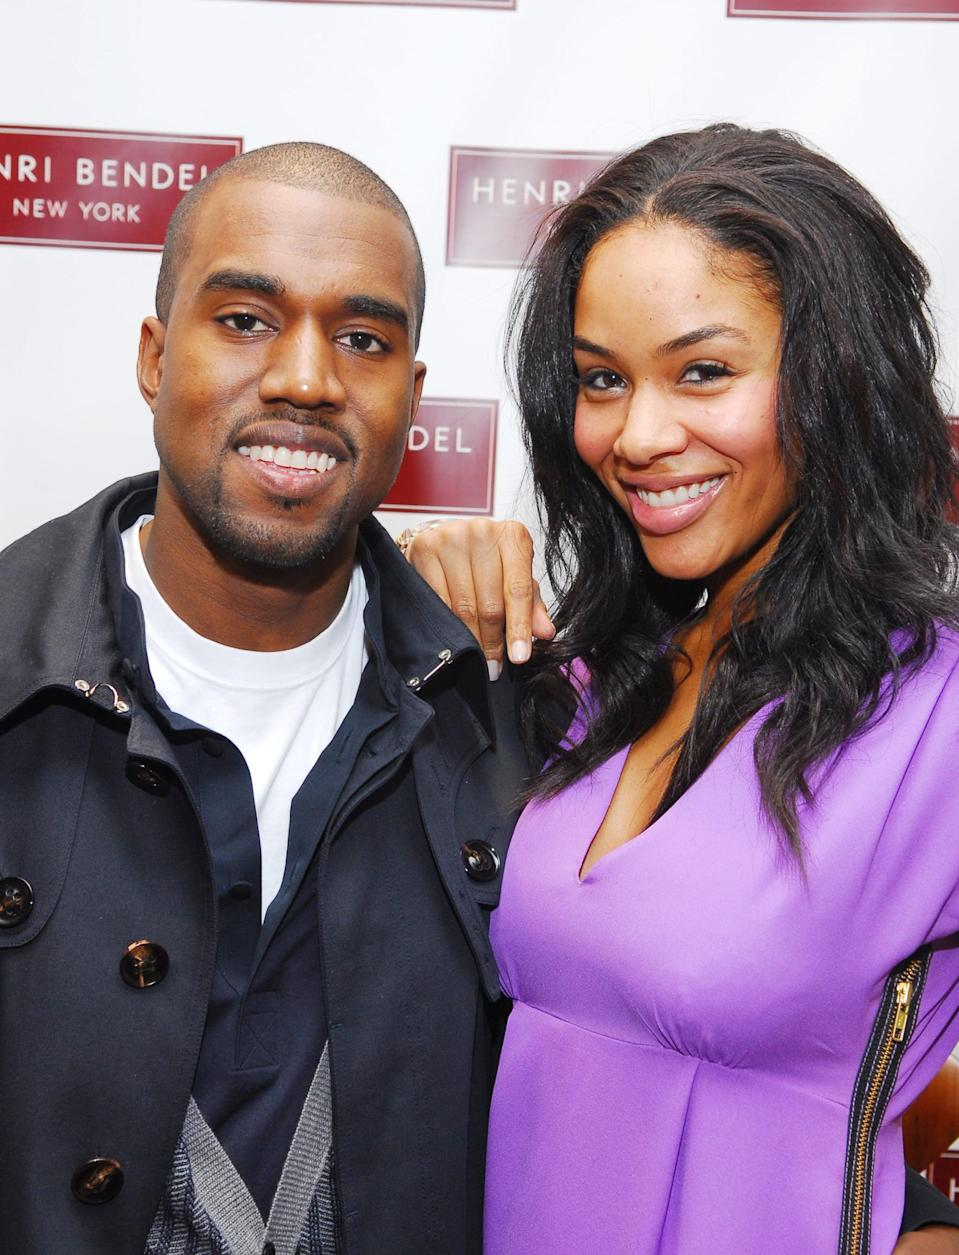 """<p>Between 2002 and 2008, Kanye and fashion designer Alexis Phifer dated on and off. They met two years before the hype of <strong>College Dropout</strong> catapulted him to breakthrough success but broke up in 2004. By 2005 they'd reunited, and Kanye popped the question in 2006. Their relationship started to fall apart after Kanye's mother, Donda, unexpectedly died following complications from a botched plastic surgery procedure, and ended for good in 2008. </p> <p>""""It's always sad when things like this end, and we remain friends,"""" Alexis <a href=""""http://people.com/celebrity/kanye-wests-fiance-sad-over-breakup/?xid=Popsugar"""" class=""""link rapid-noclick-resp"""" rel=""""nofollow noopener"""" target=""""_blank"""" data-ylk=""""slk:told People"""">told <strong>People</strong></a> after they called off their engagement. """"I wish him the best in his future and all of his endeavors. He's one of the most talented people I've ever met."""" Their breakup is said to have inspired many of the songs on his <strong>808s &amp; Heartbreaks</strong> album.</p>"""